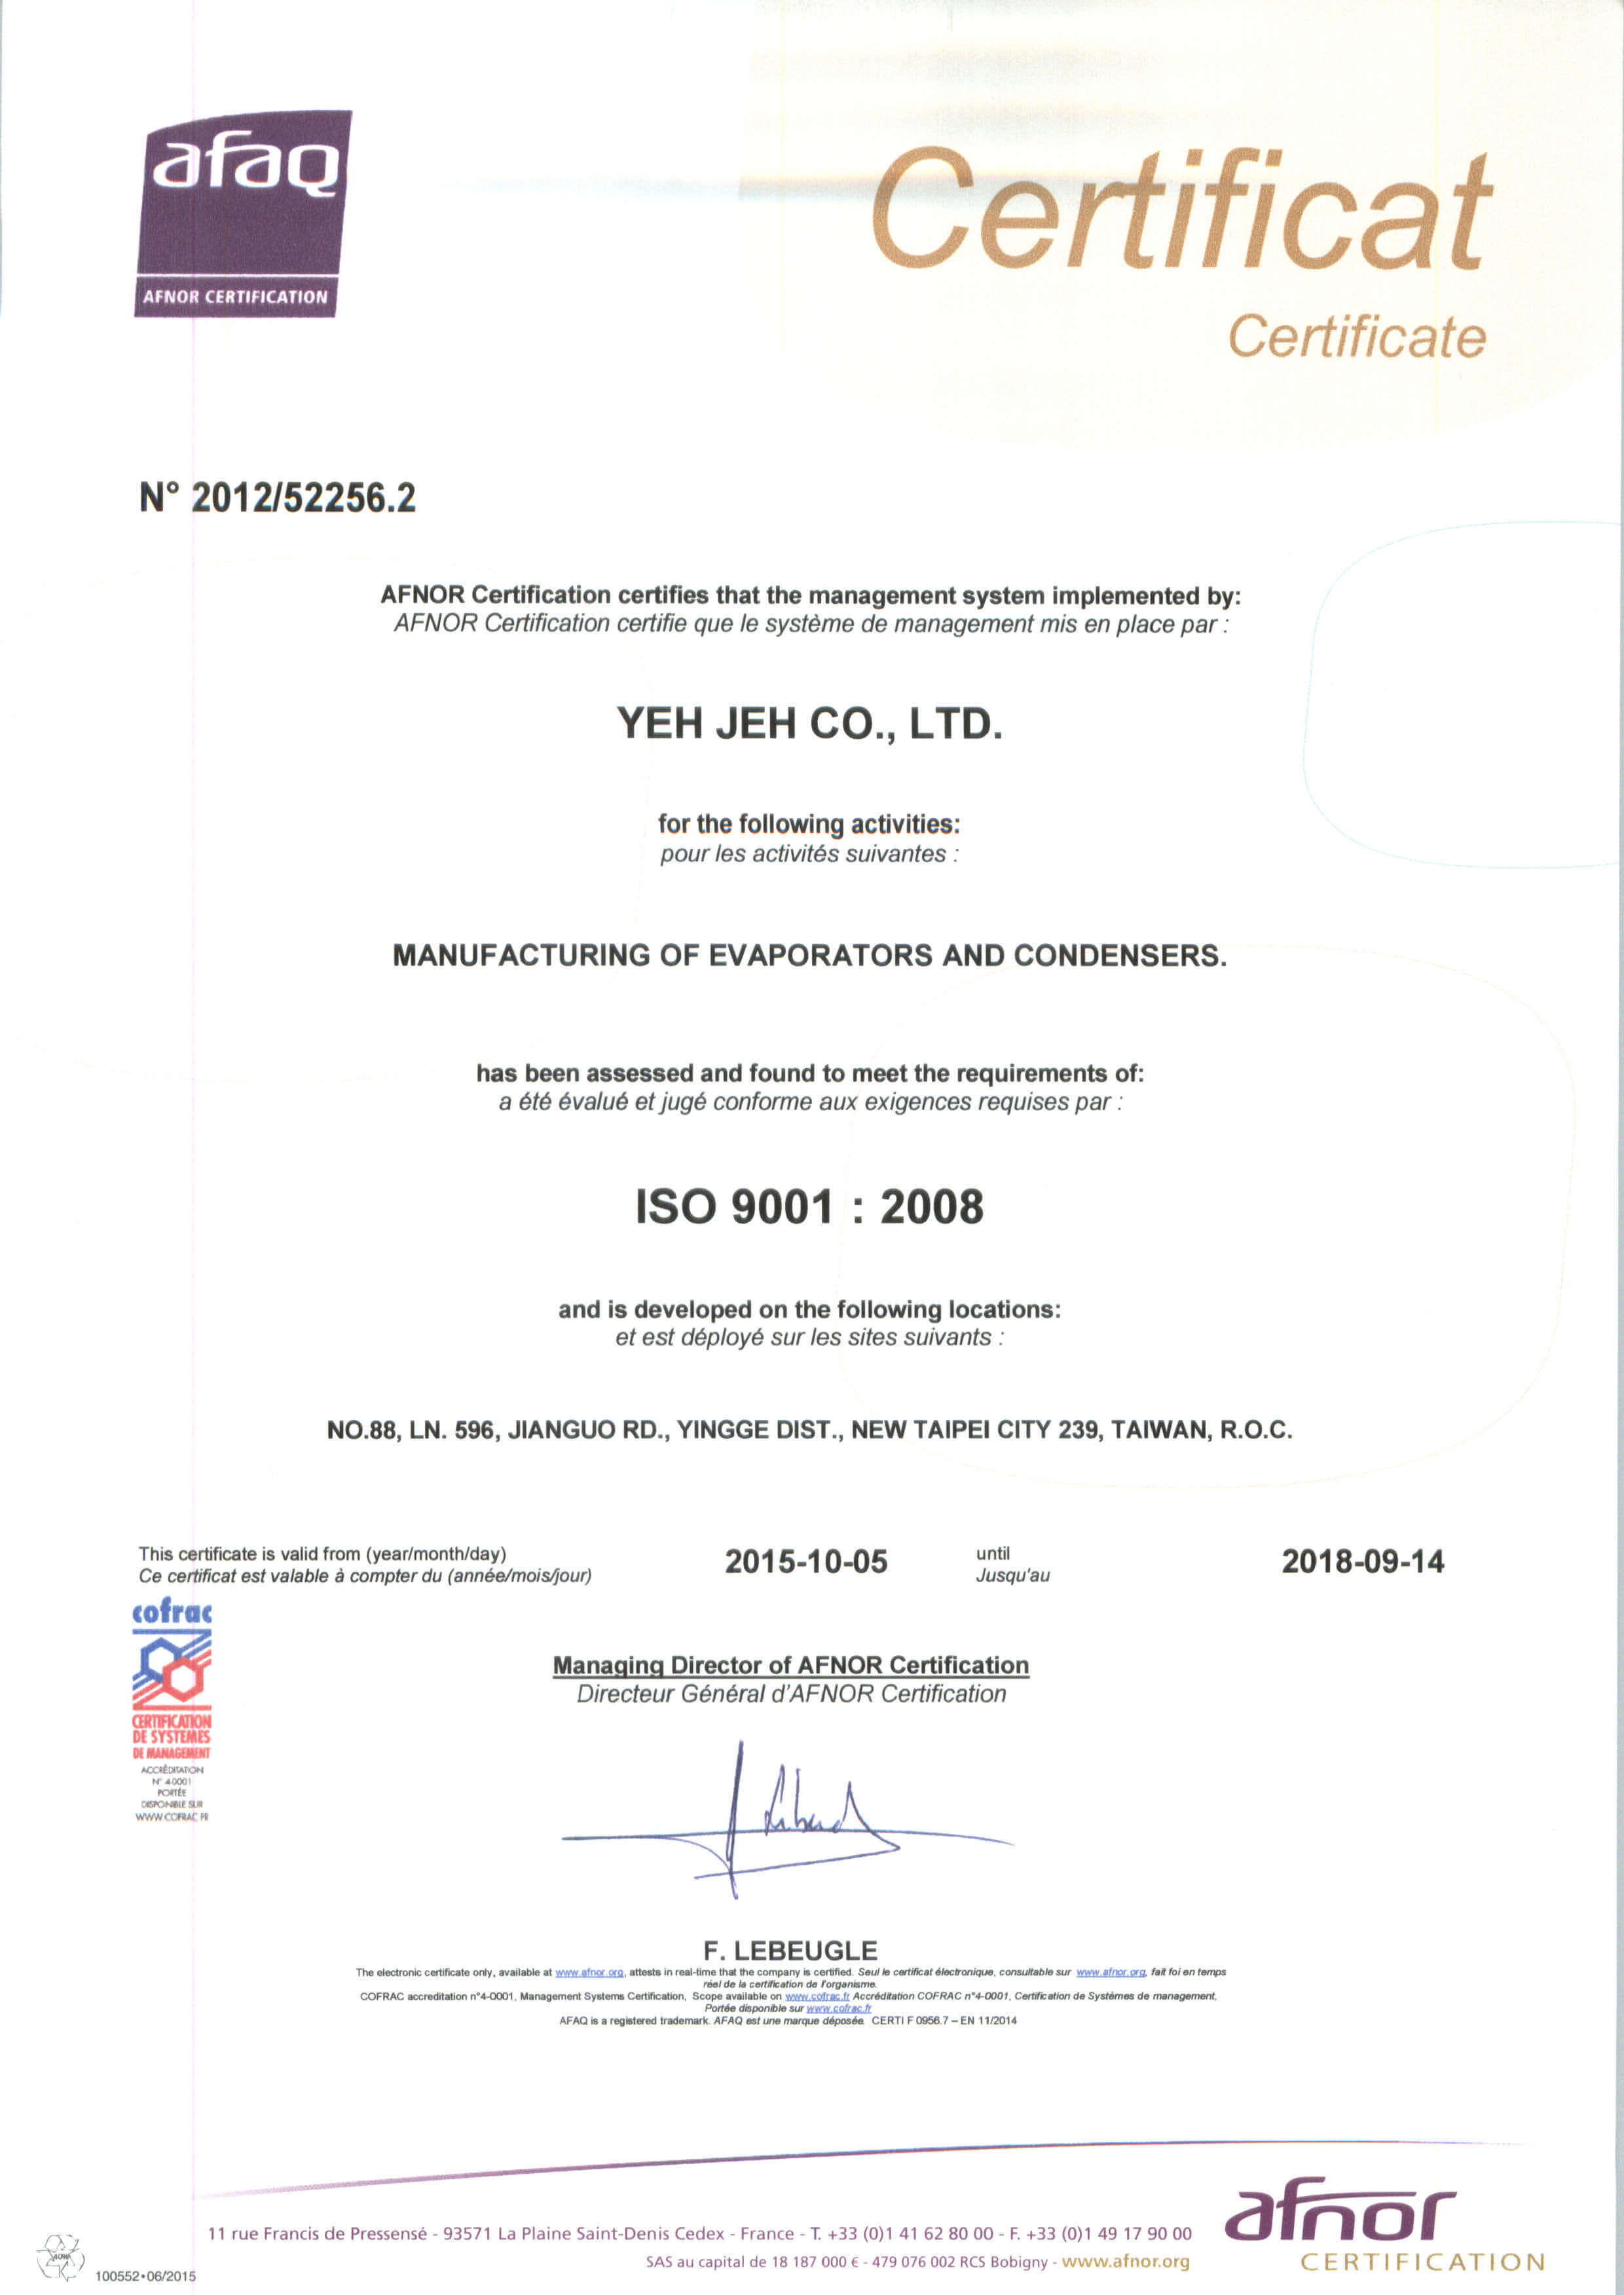 yehjeh iso9001 certified